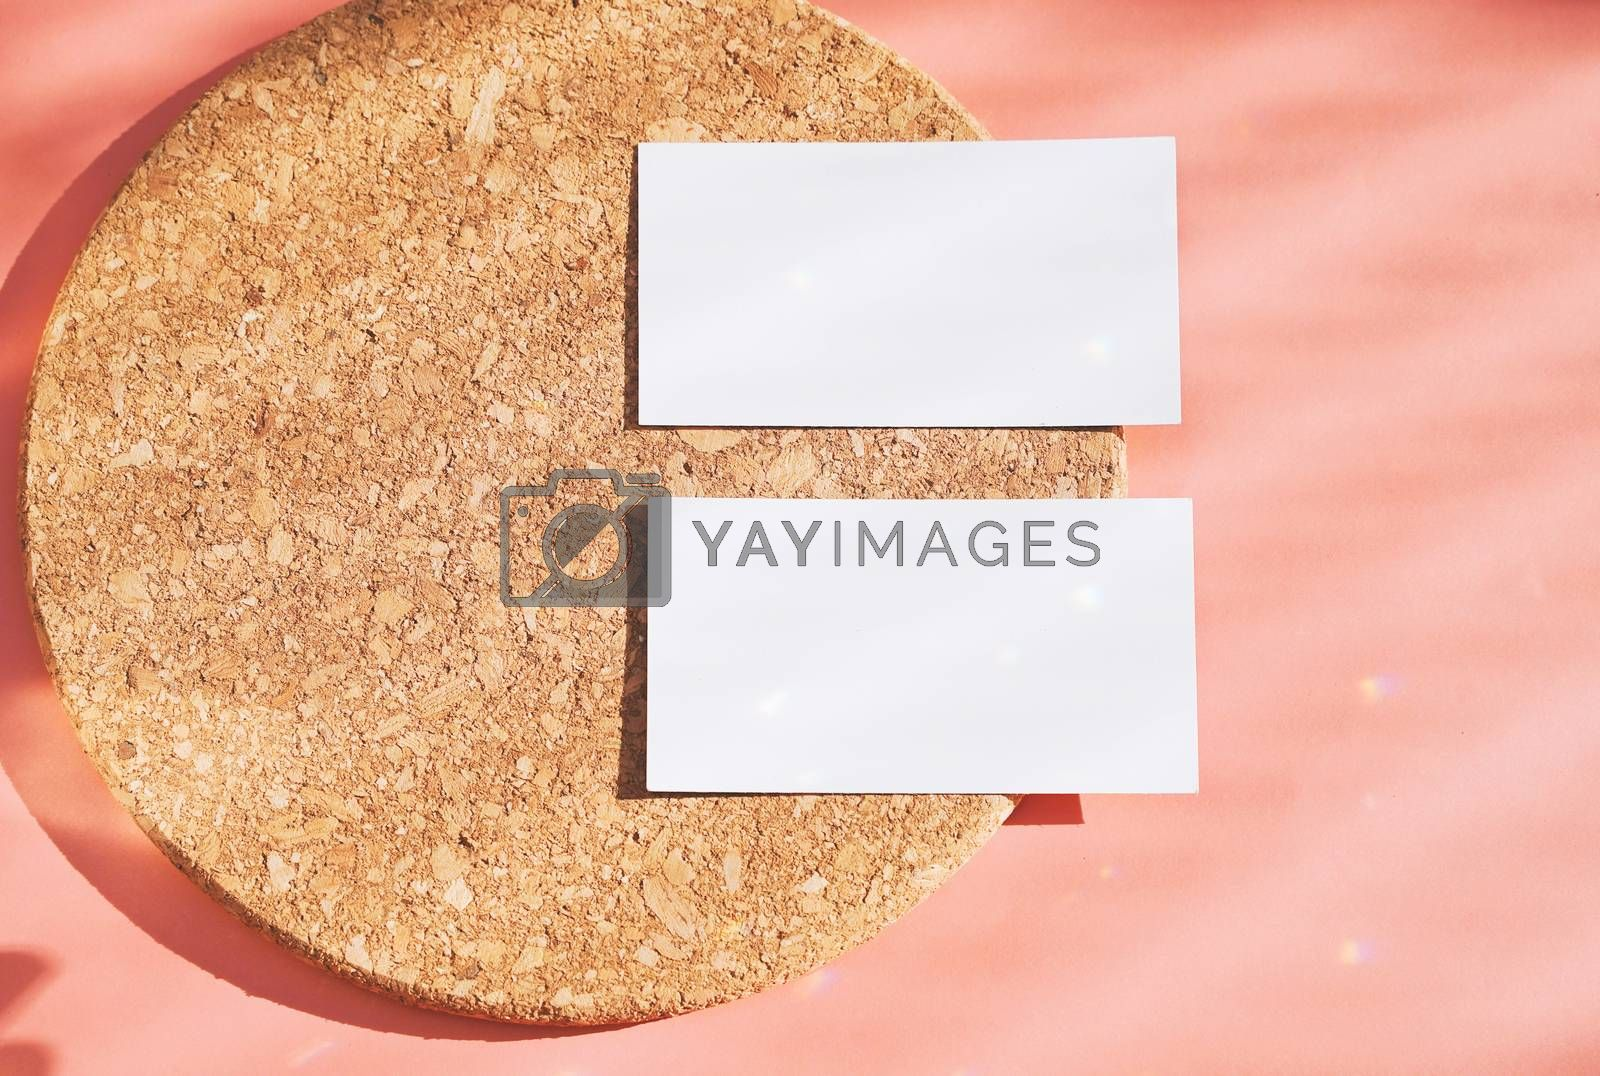 Flat lay of branding identity business name card on wood board and orange background, light and shadow shape with sparkle effect, minimal design